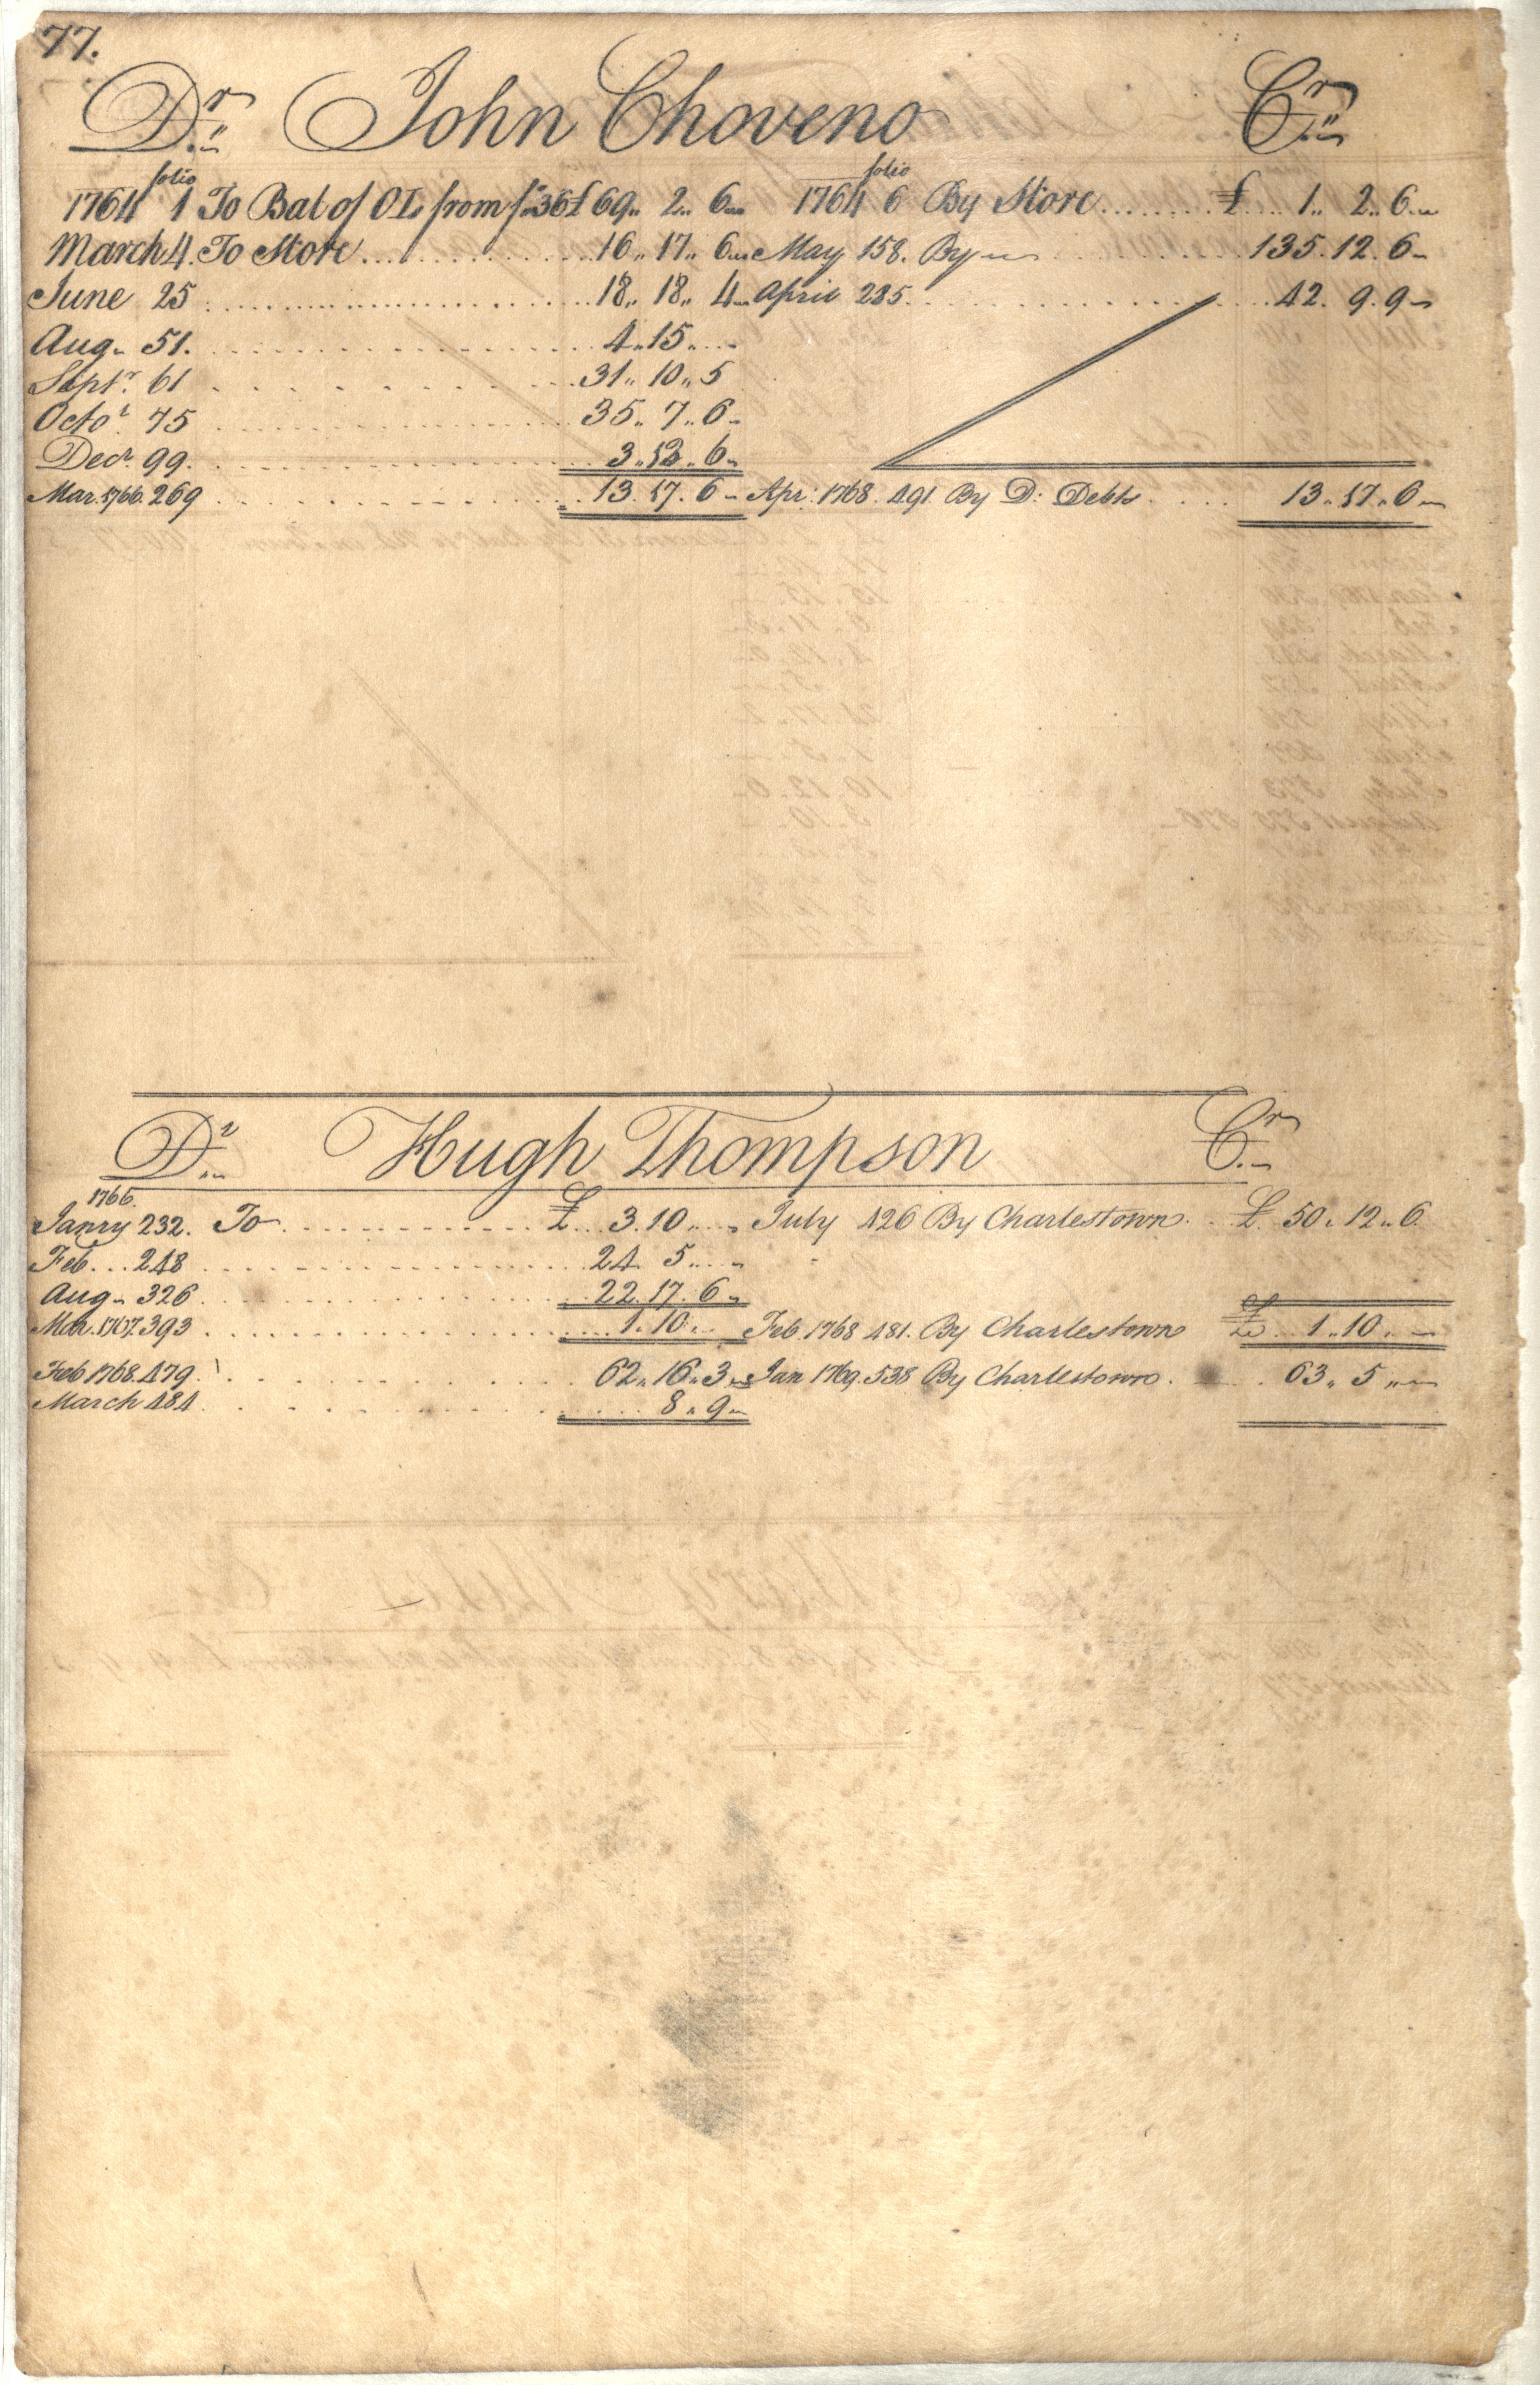 Plowden Weston's Business Ledger, page 77